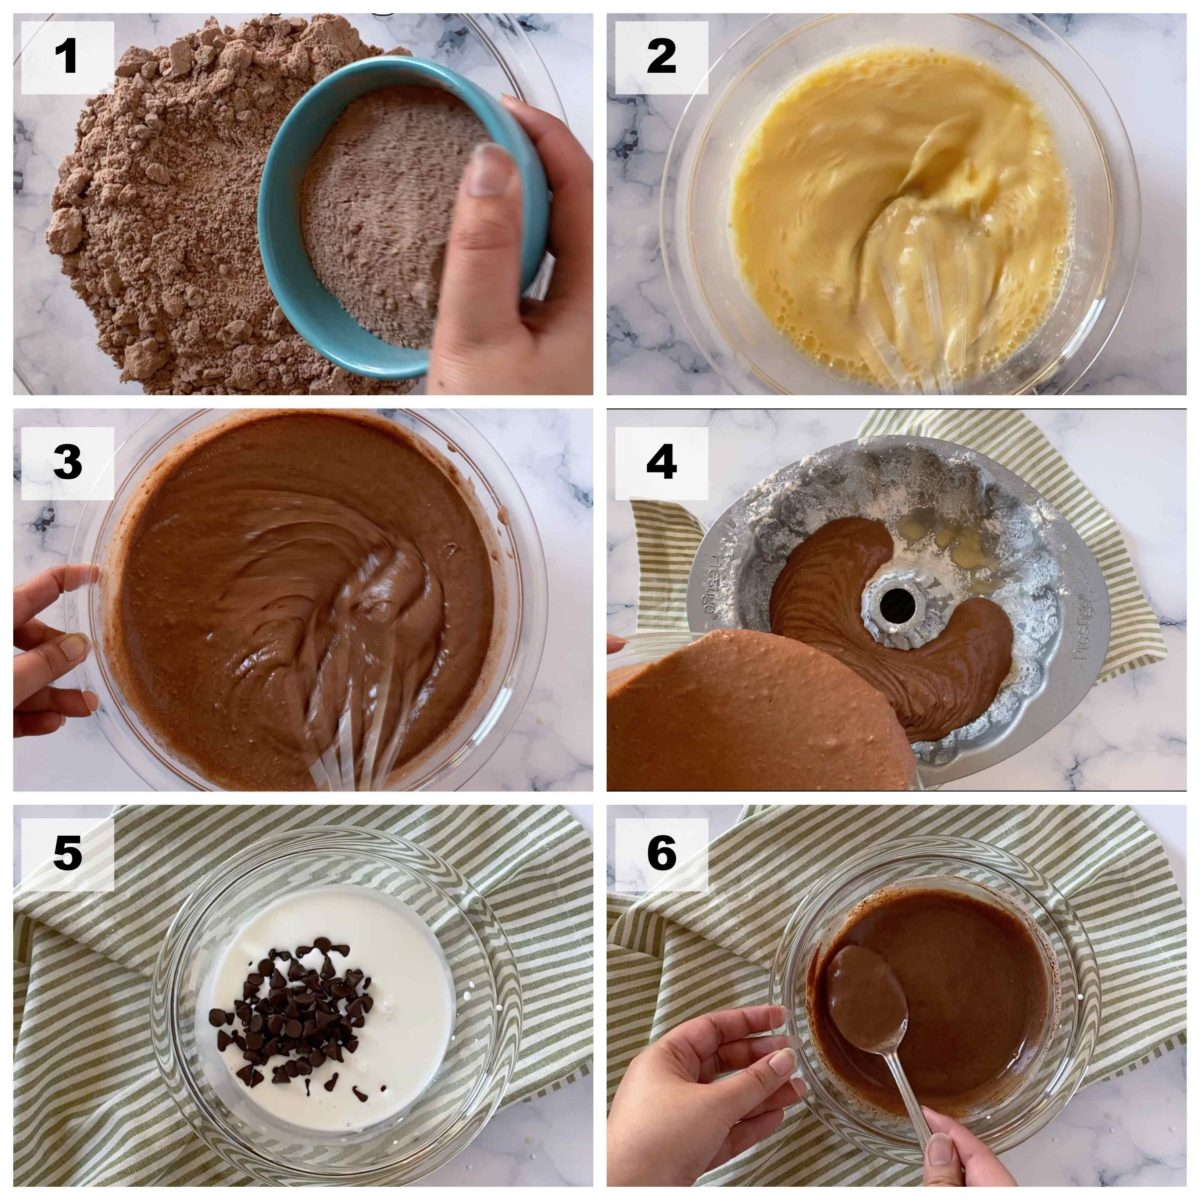 Step by step photos on how to make chocolate bundt cake.